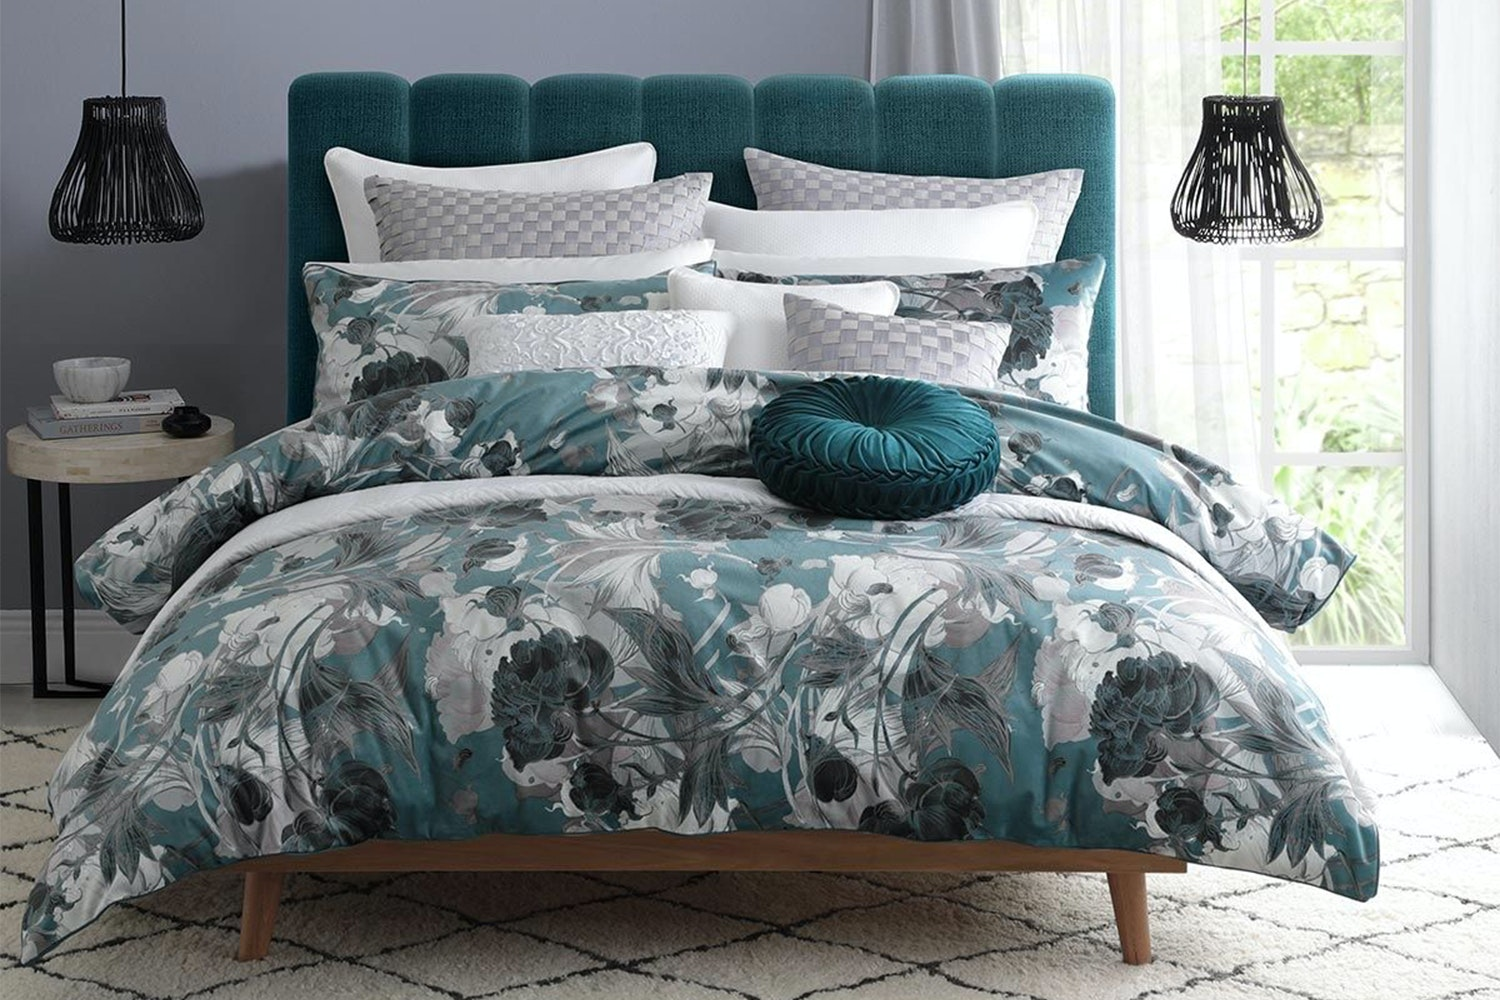 Cyra Emerald Duvet Cover Set By Private Collection Harvey Norman New Zealand